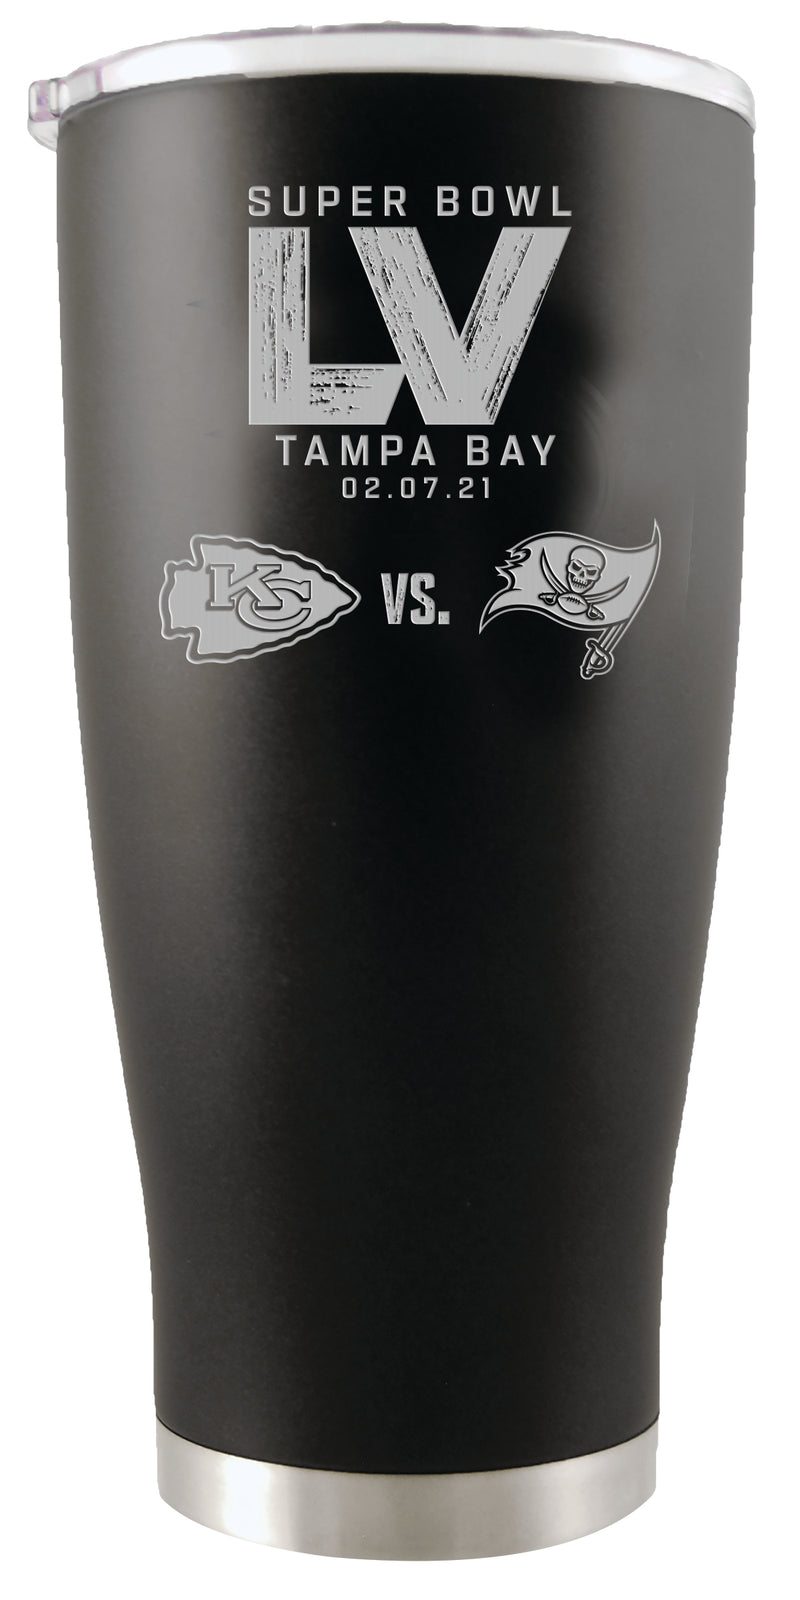 Super Bowl LV Dueling 20oz Black Stainless Steel Etched Tumbler